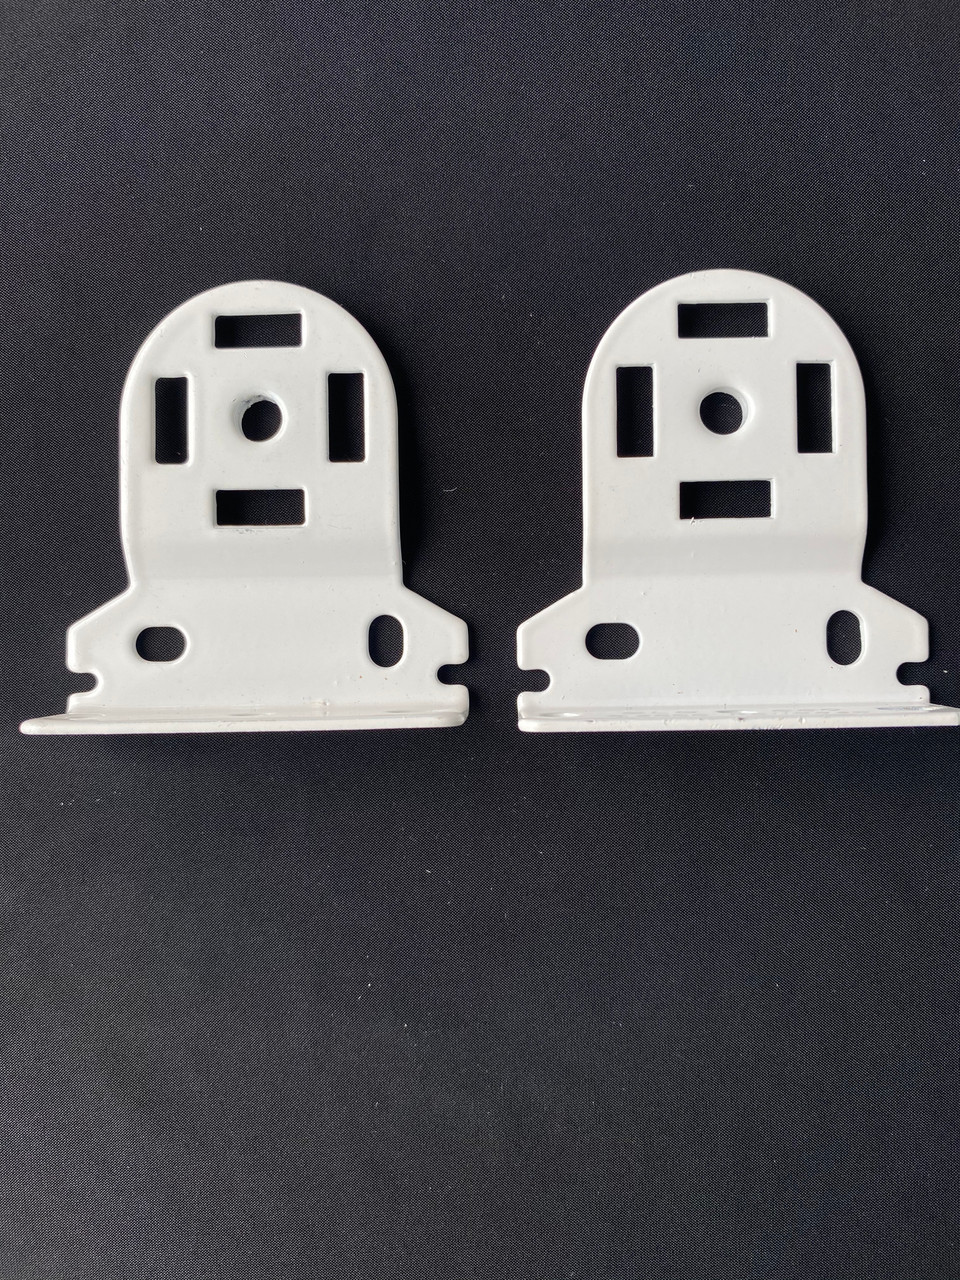 RollEase Roller Shade Mounting Bracket - Front View